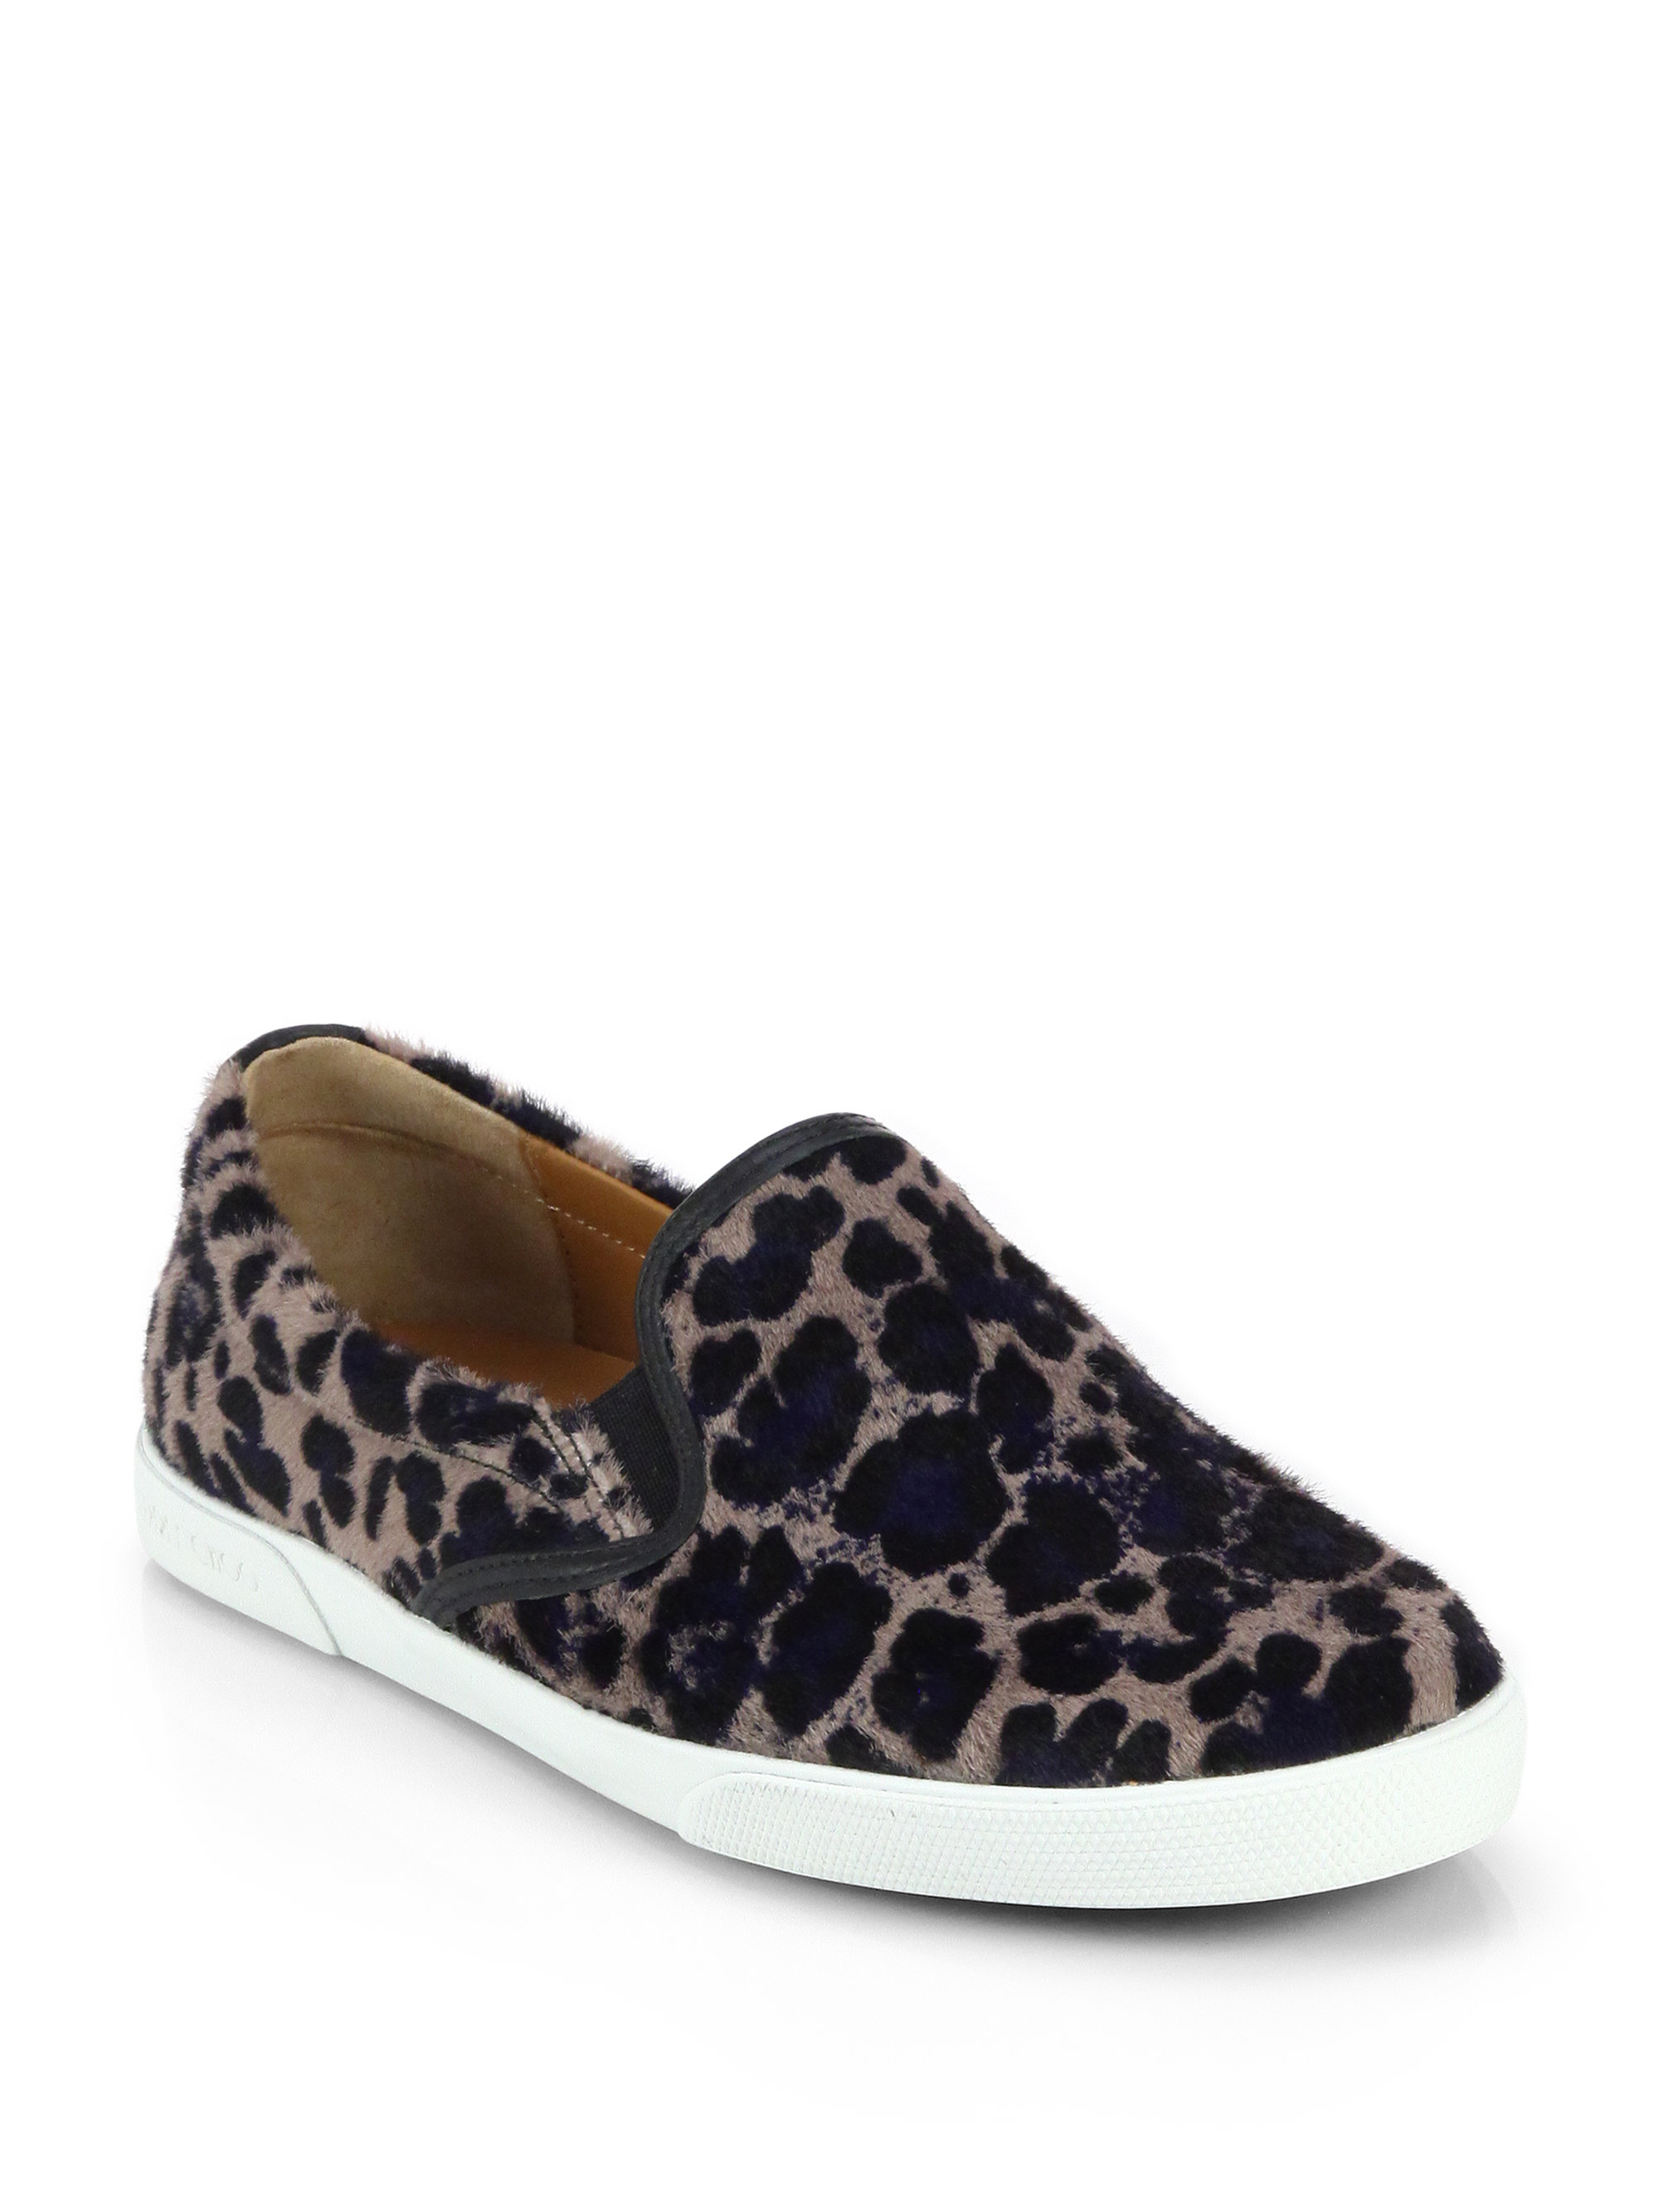 jimmy choo demi leopard print calf hair sneakers lyst. Black Bedroom Furniture Sets. Home Design Ideas